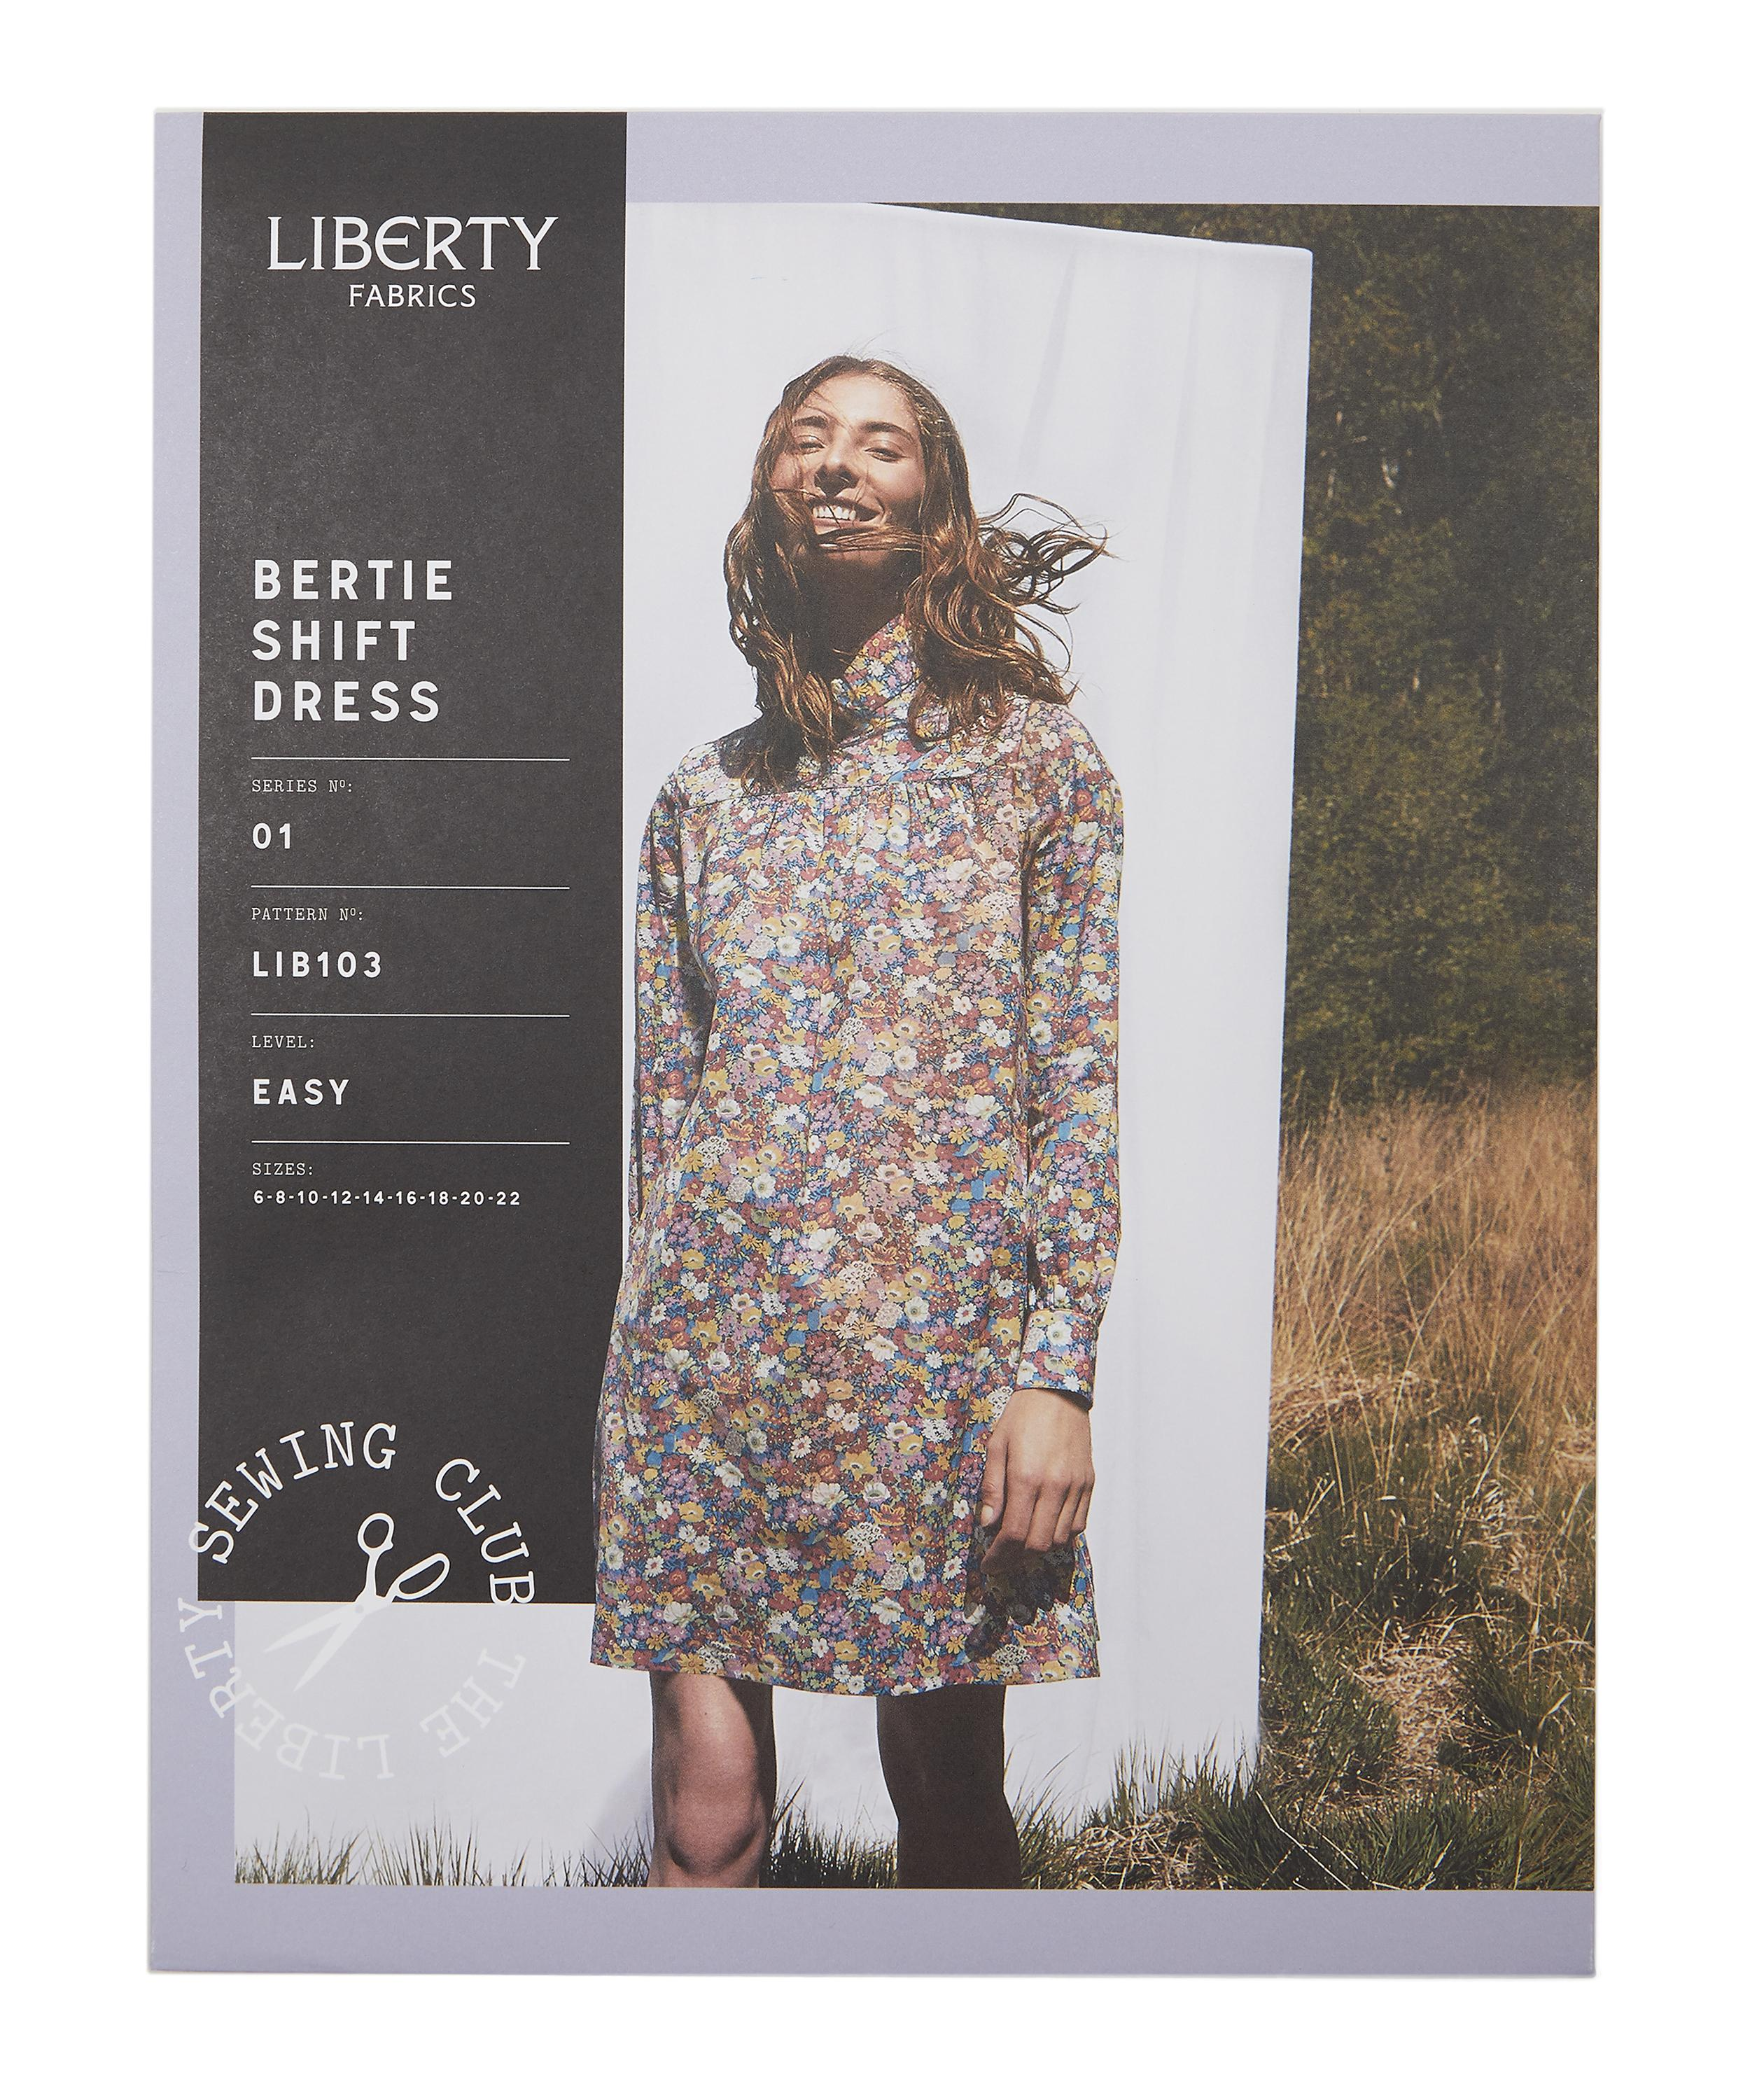 Liberty Fabrics Bertie Shift Dress